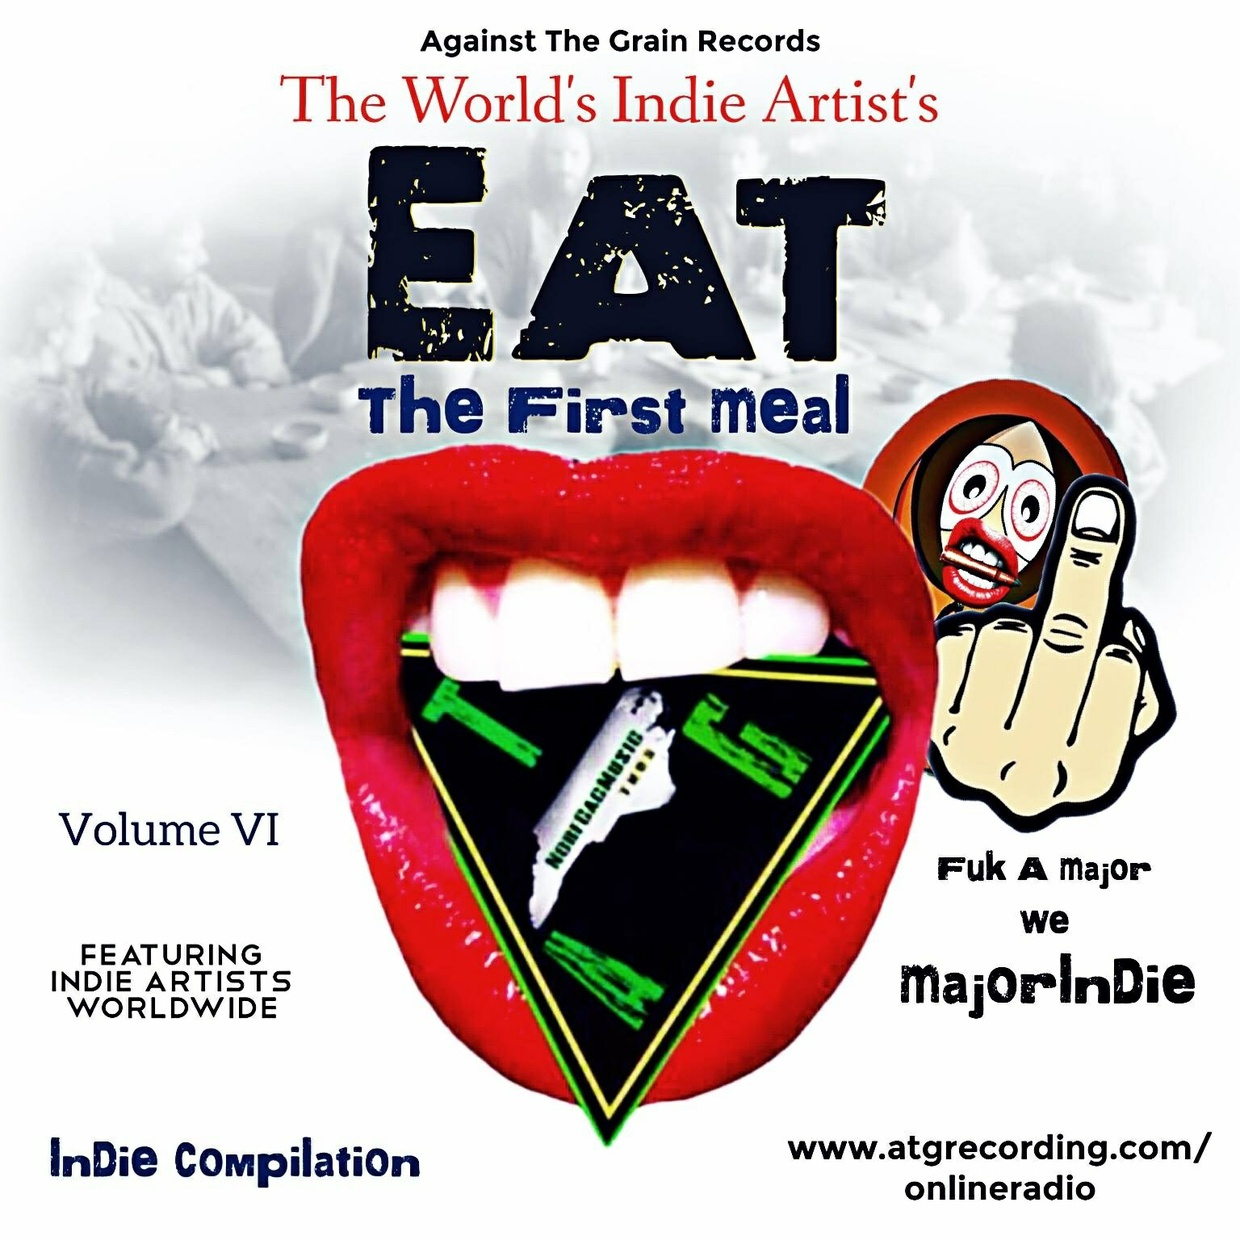 The World's Indie Artists Volume 6, The First Meal